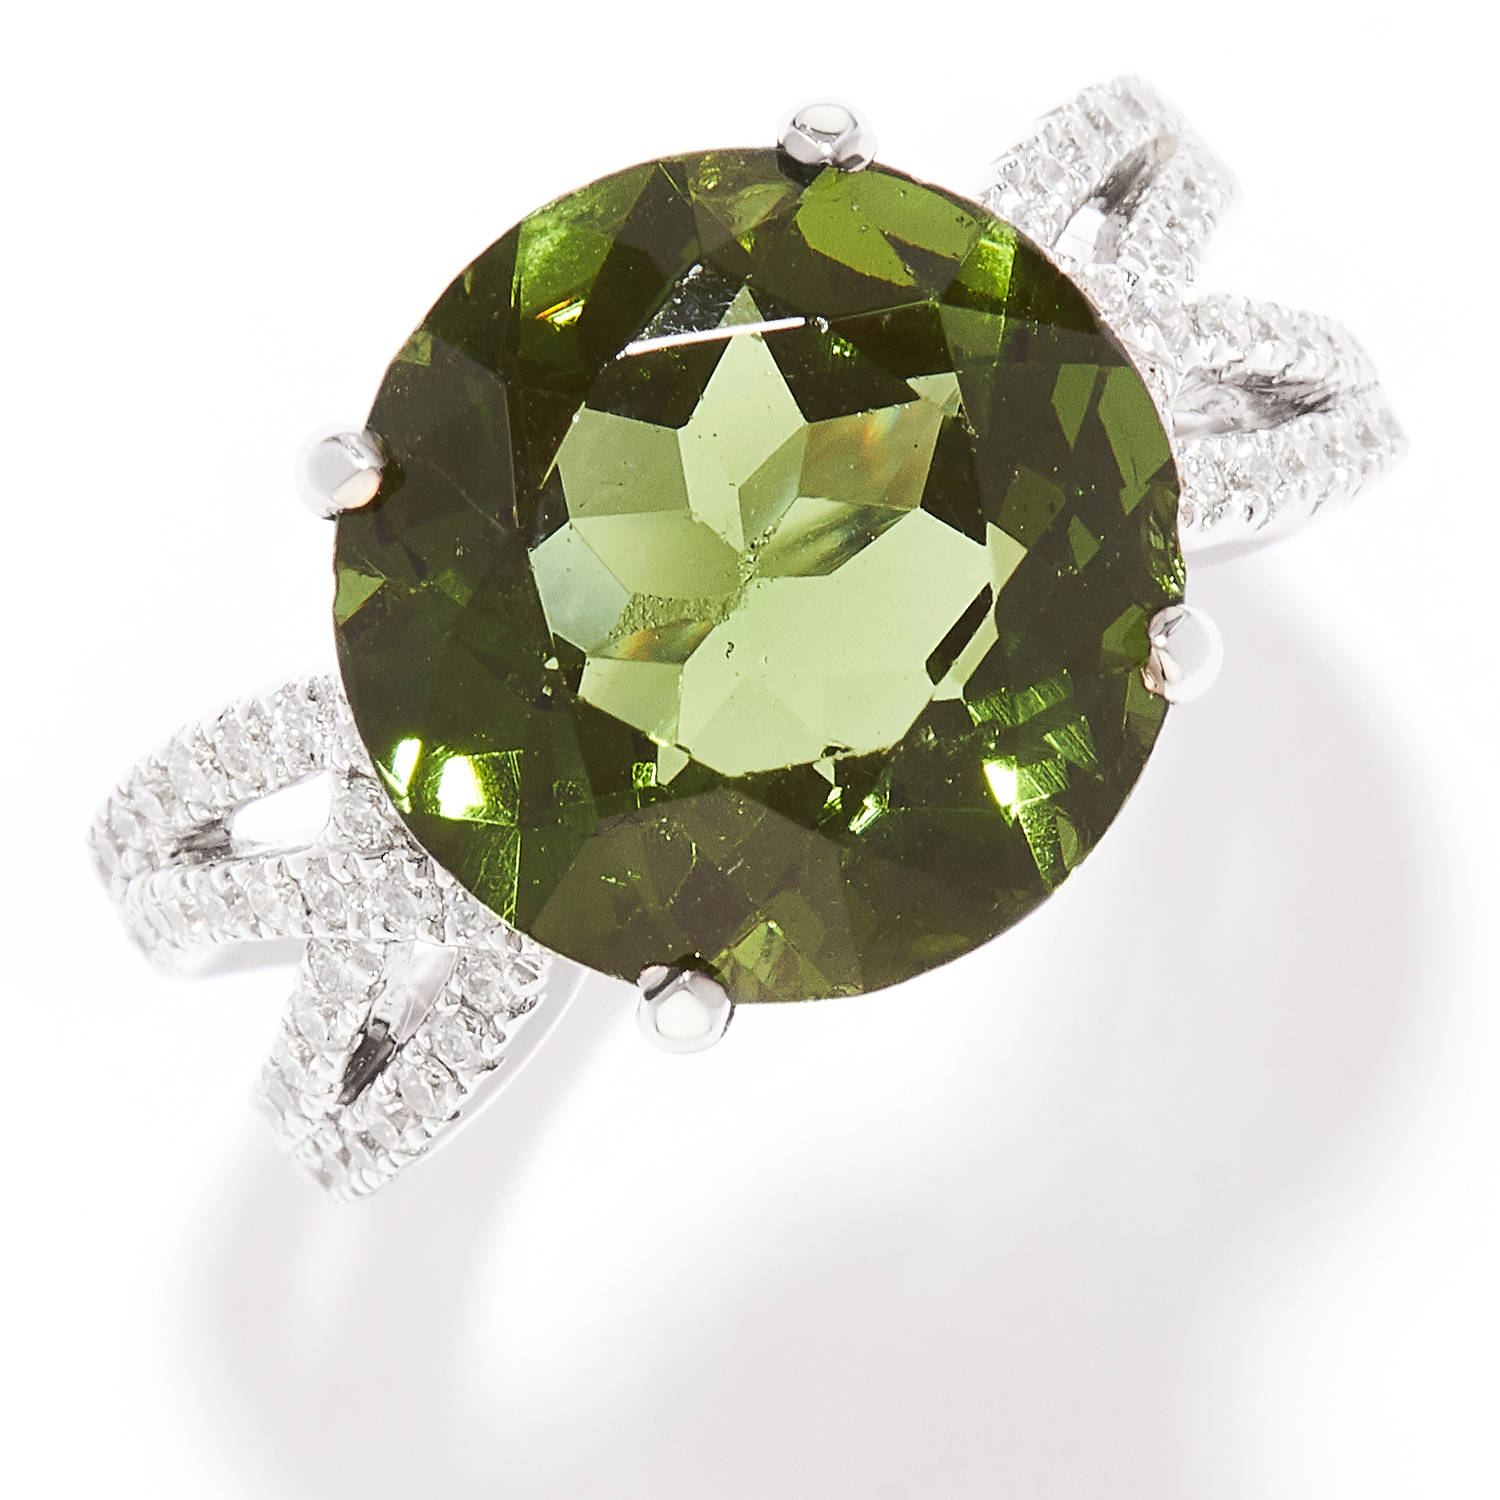 TOURMALINE AND DIAMOND DRESS RING in 18ct white gold, set with a round cut green tourmaline and